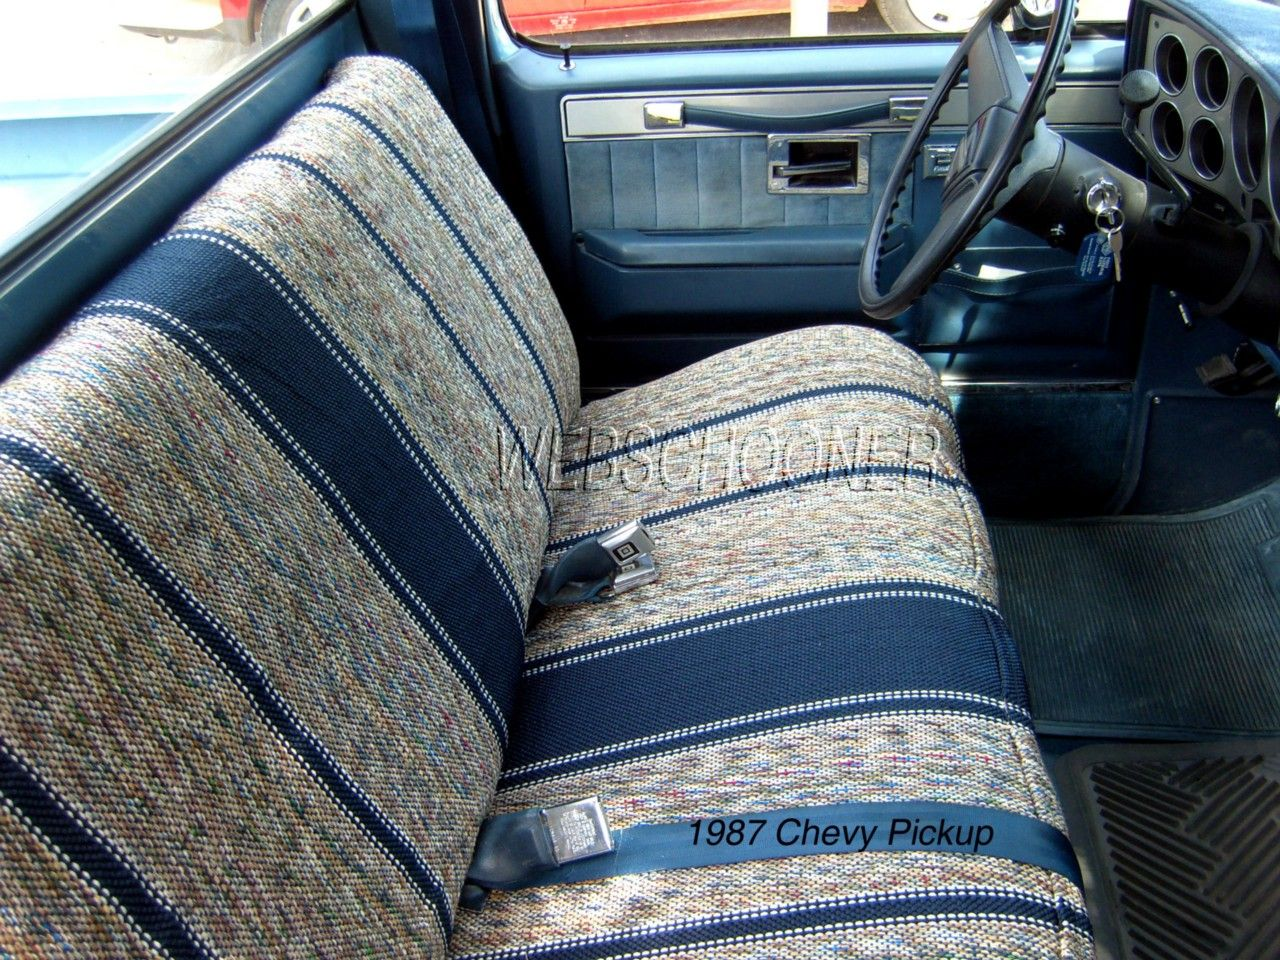 Truck Bench Seat Cover Saddle Blanket Navy Blue 1pc Full Size Ford Chevy Dodge Bench Seat Covers Diy Car Seat Cover Seat Cover